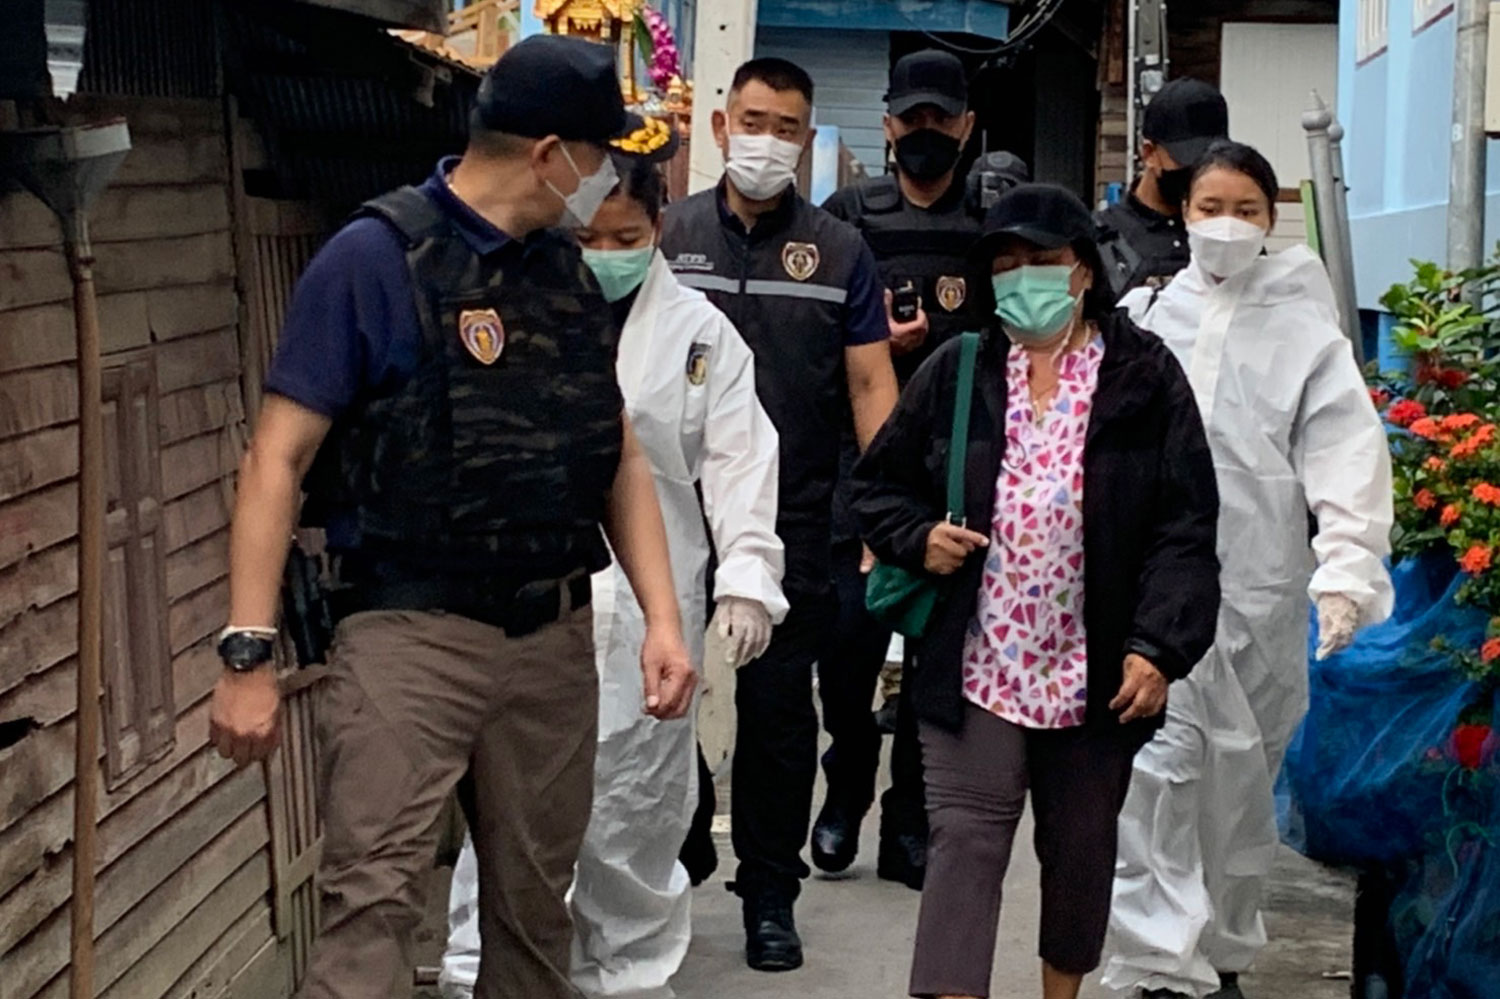 Wassana Meechan, 54, centre right, is arrested in Phra Samut Chedi district on Thursday morning by plainclothes police. She was wanted on an arrest warrant for collusion in human trafficking by procuring women for forced prostitution. (Photo supplied)